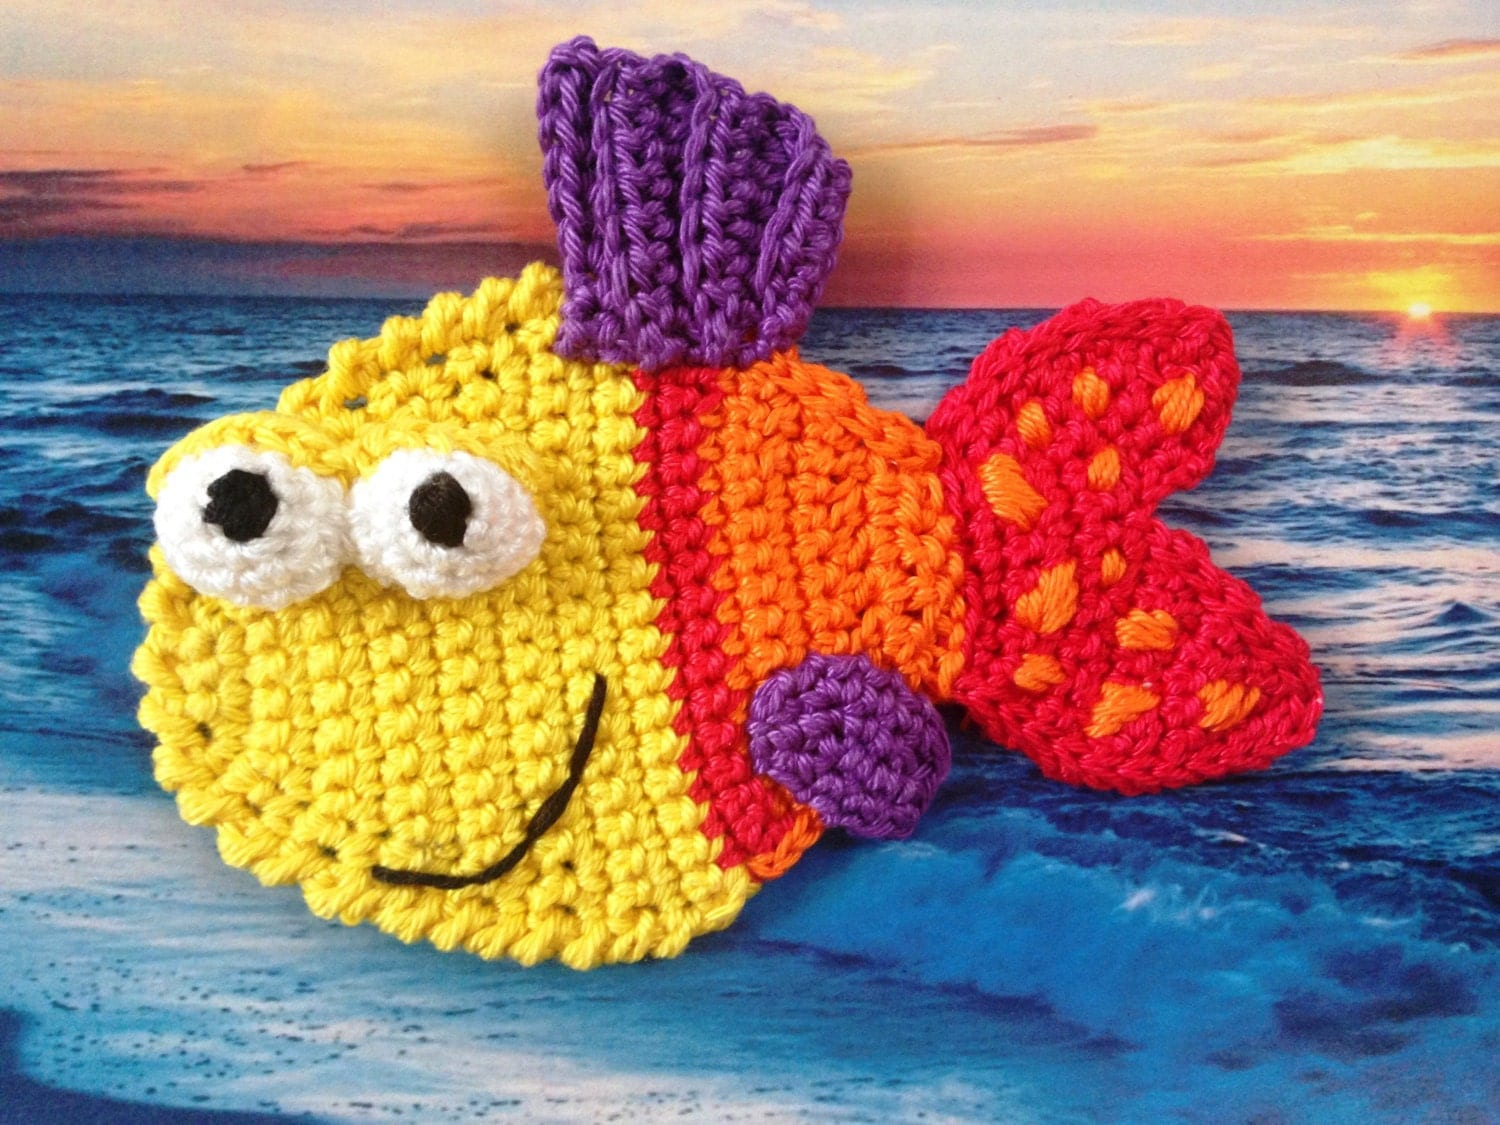 Free Crochet Fish Pillow Pattern : Crochet Applique pattern Crochet Fish applique pattern